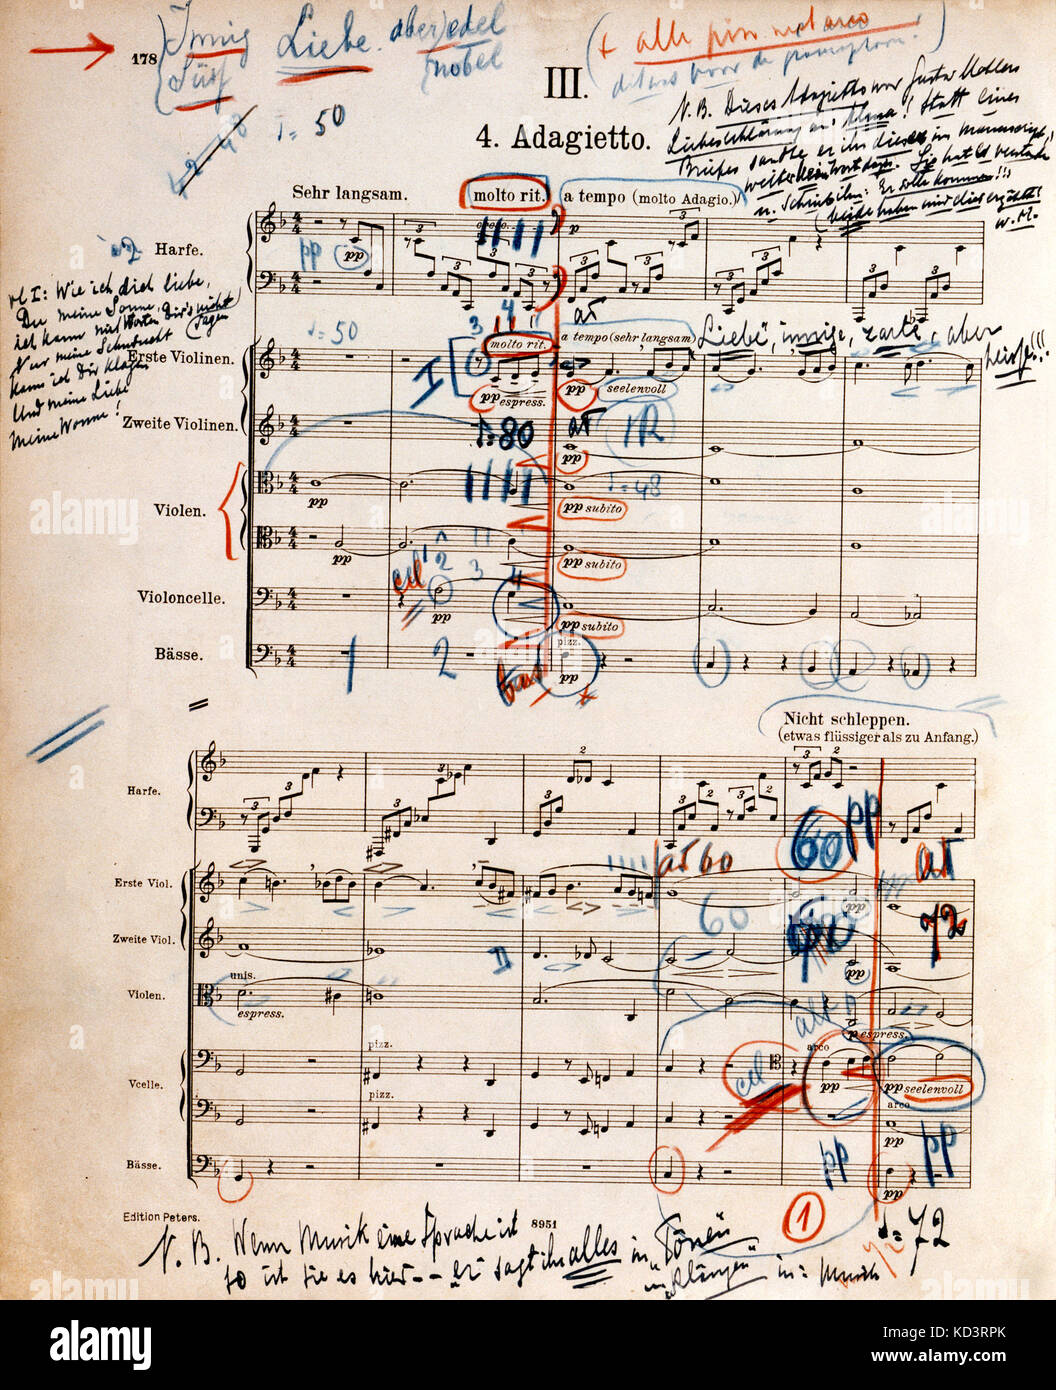 5Th Symphony printed score of mahler's 5th symphony - adagietto the first